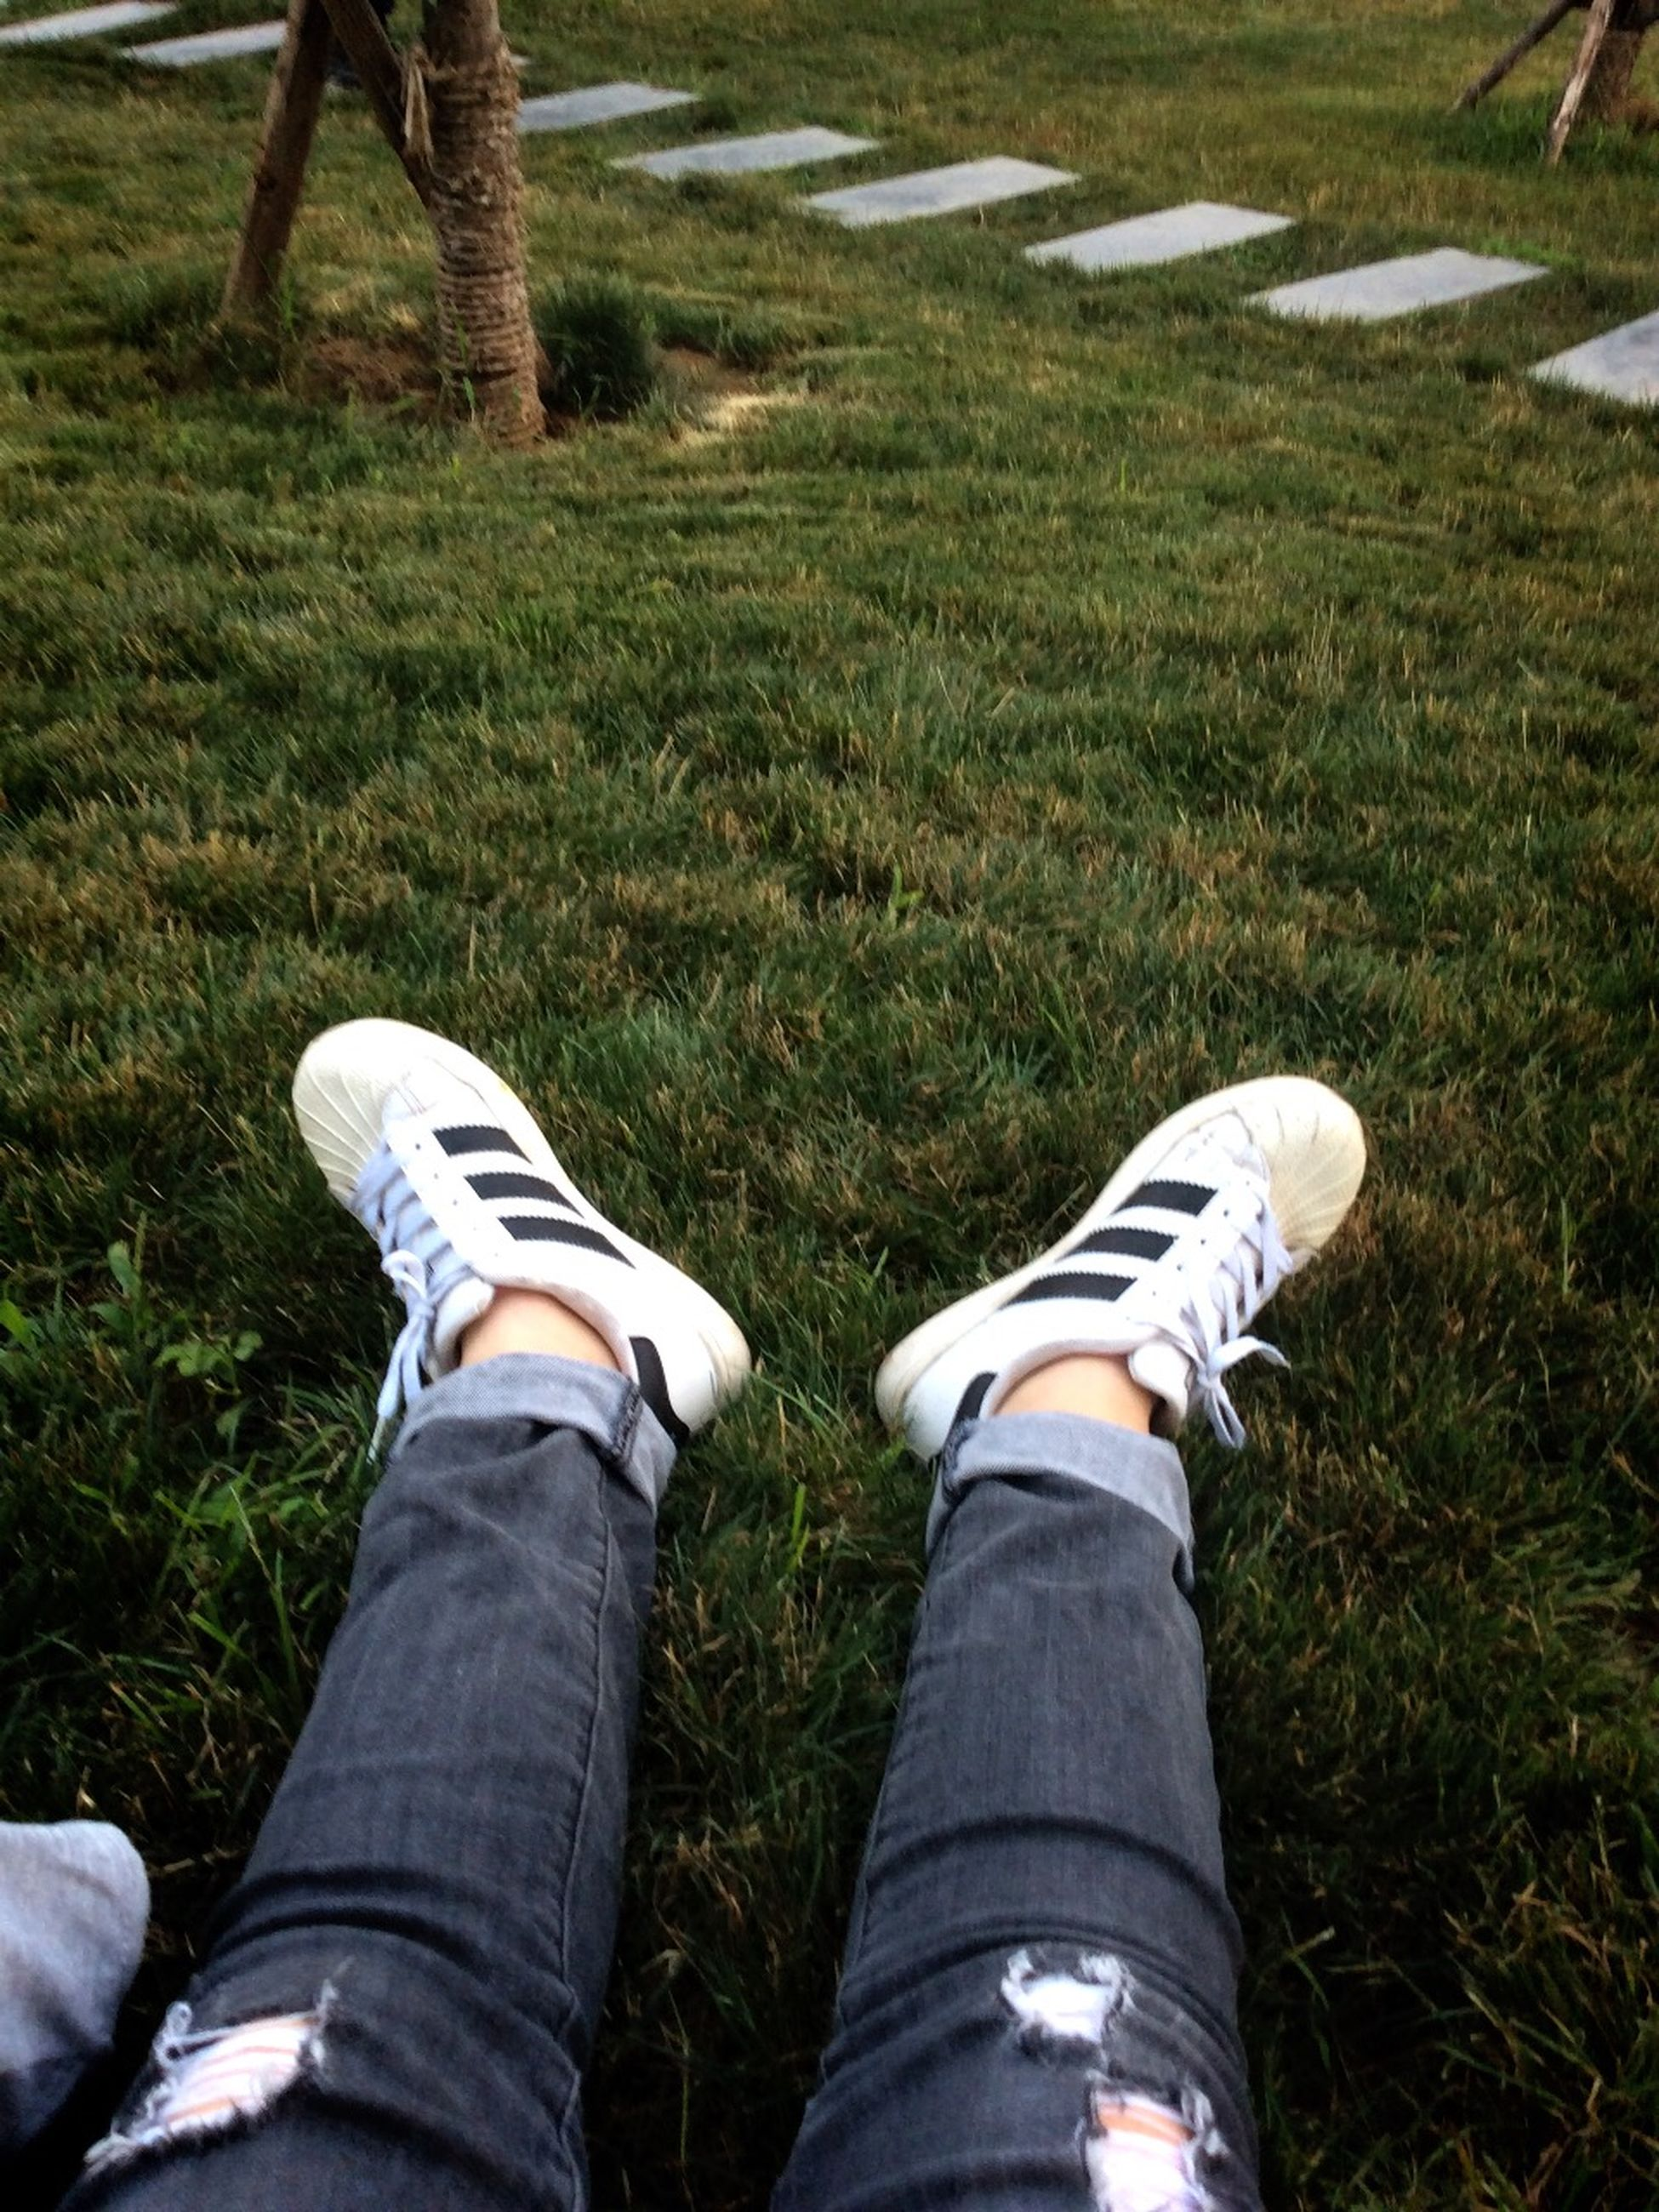 low section, person, shoe, lifestyles, men, leisure activity, jeans, personal perspective, standing, footwear, grass, casual clothing, human foot, field, unrecognizable person, day, canvas shoe